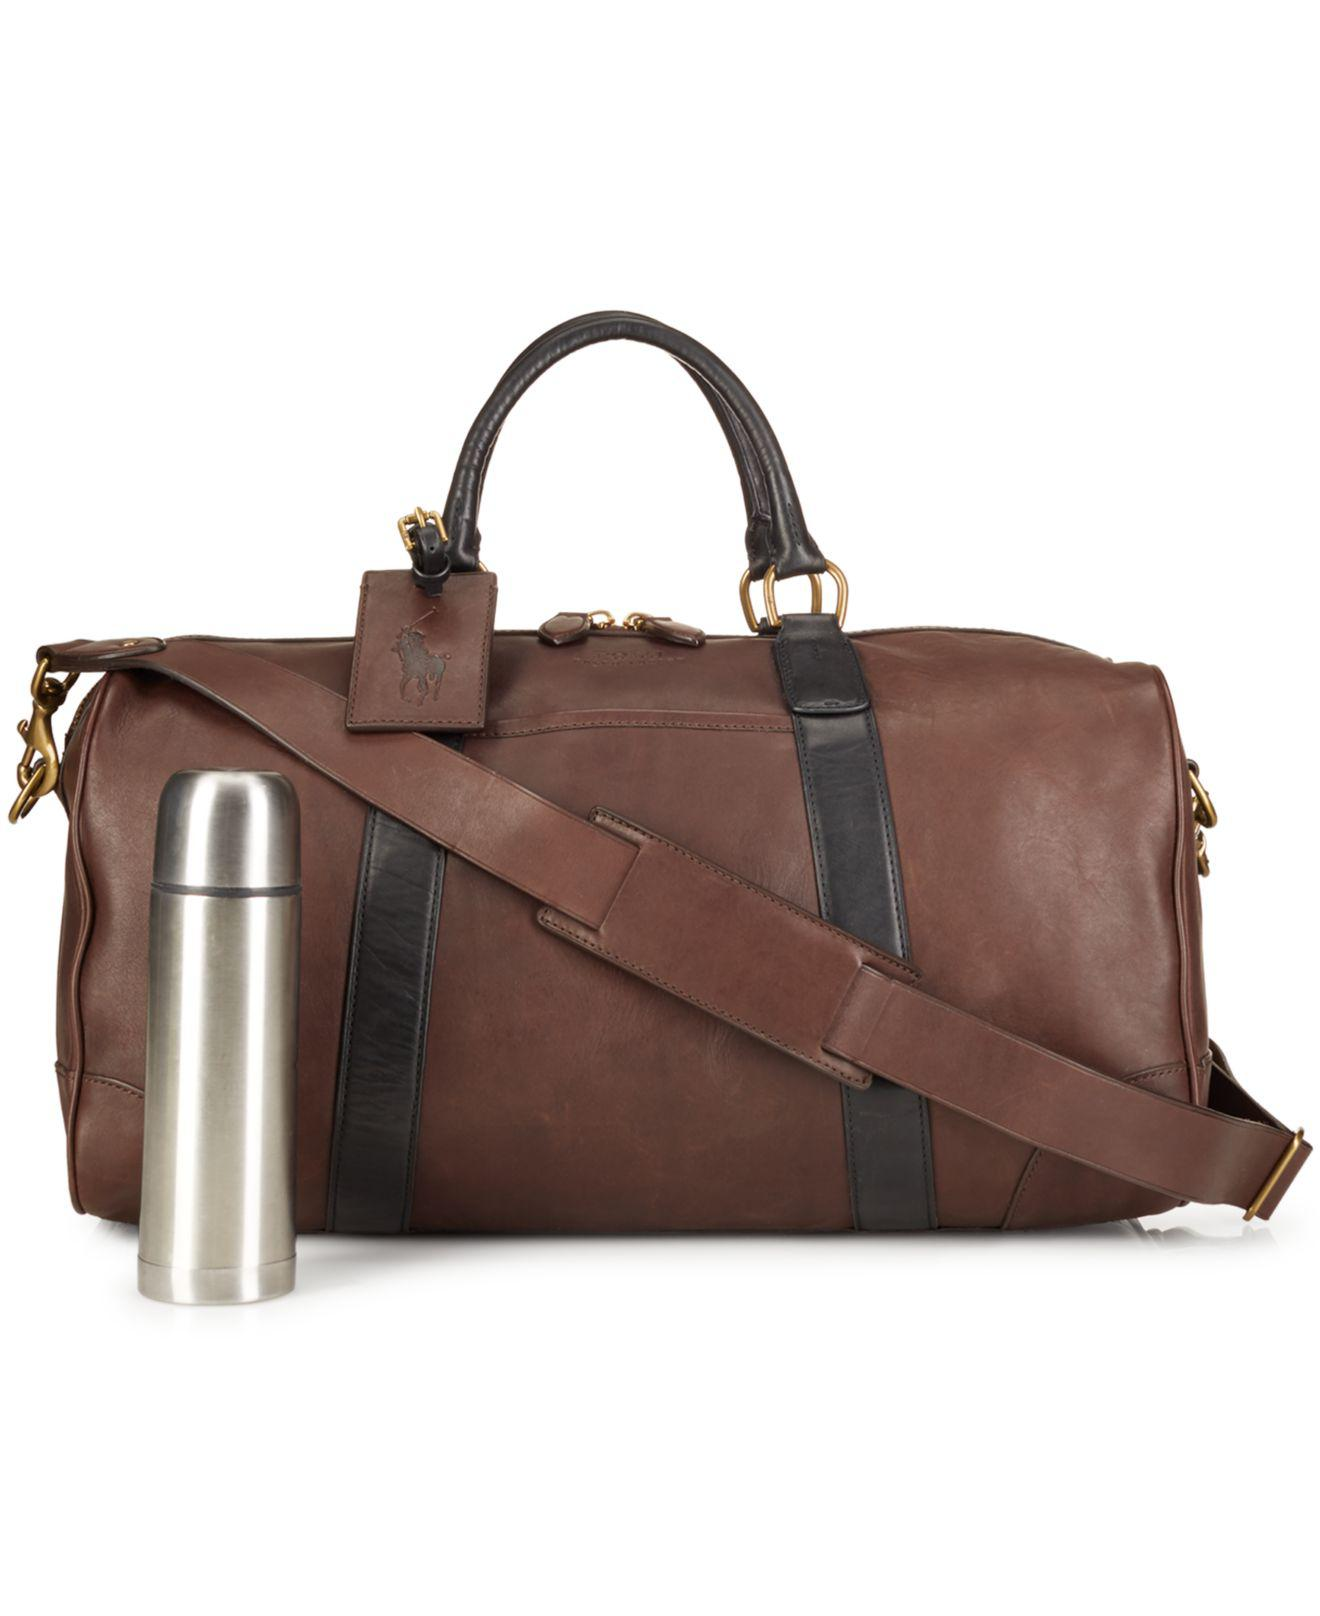 07f443f2eb Lyst - Polo Ralph Lauren Two-toned Leather Duffel Bag in Brown for Men